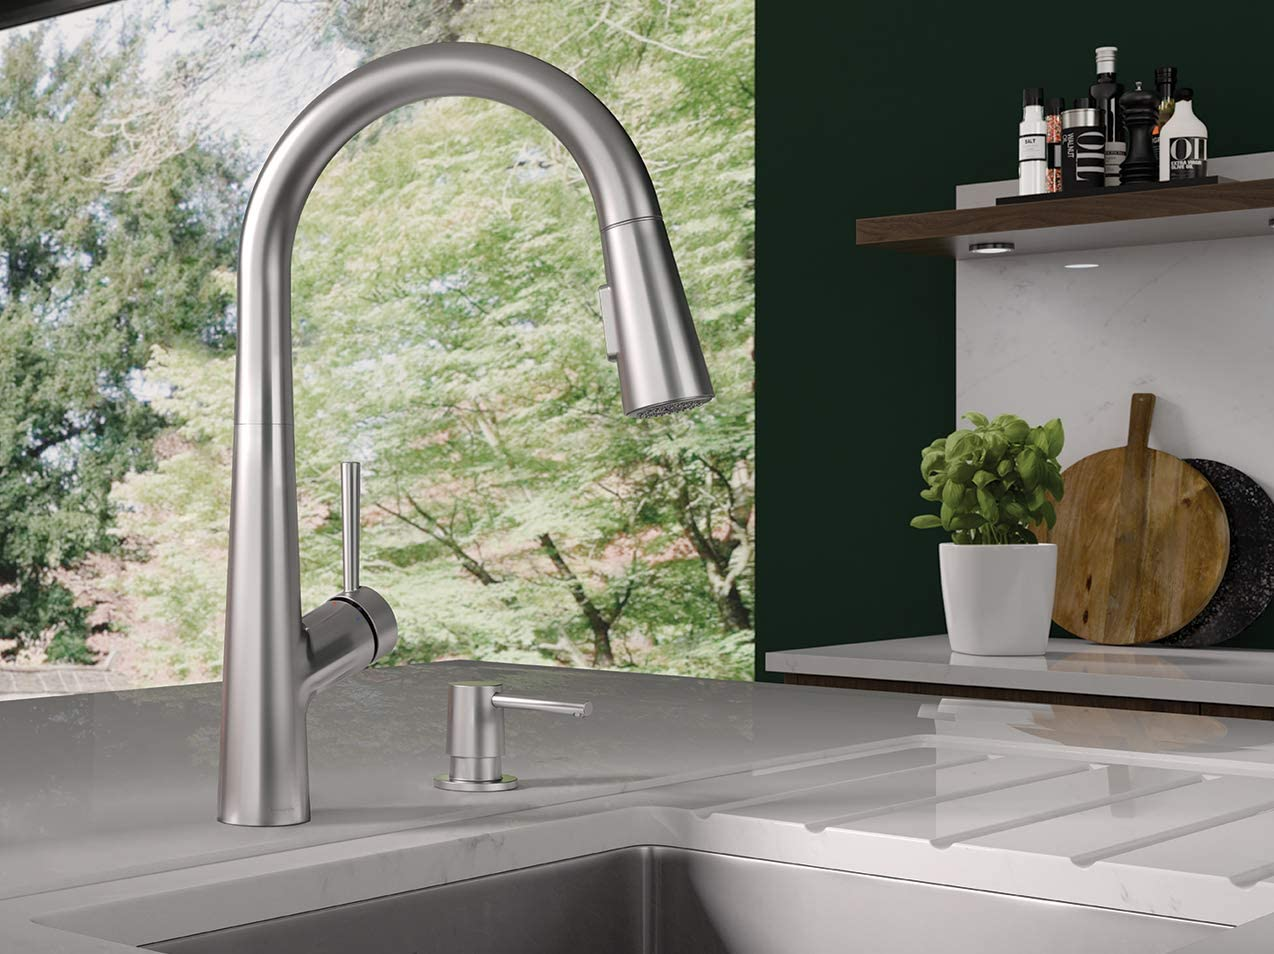 Hansgrohe 04749805 Lacuna 1 Handle 17 Inch Tall Pull Down Sprayer Kitchen Faucet Steel Optic